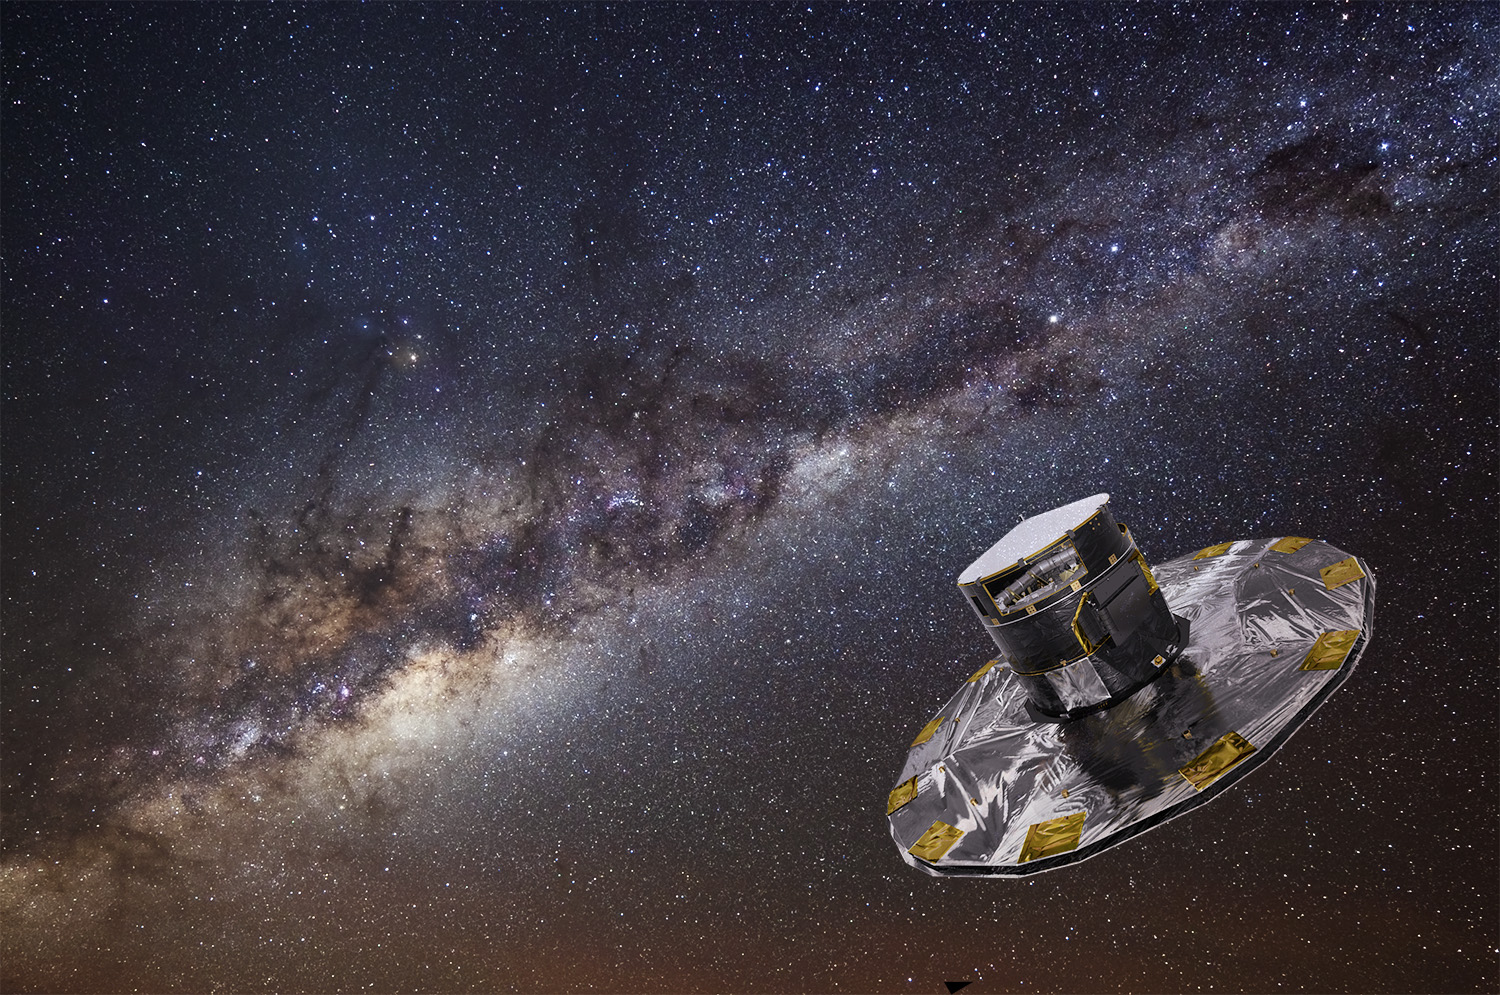 Artist S Impression Of Esa S Gaia Spacecraft Mapping The Stars Of The Milky Way C